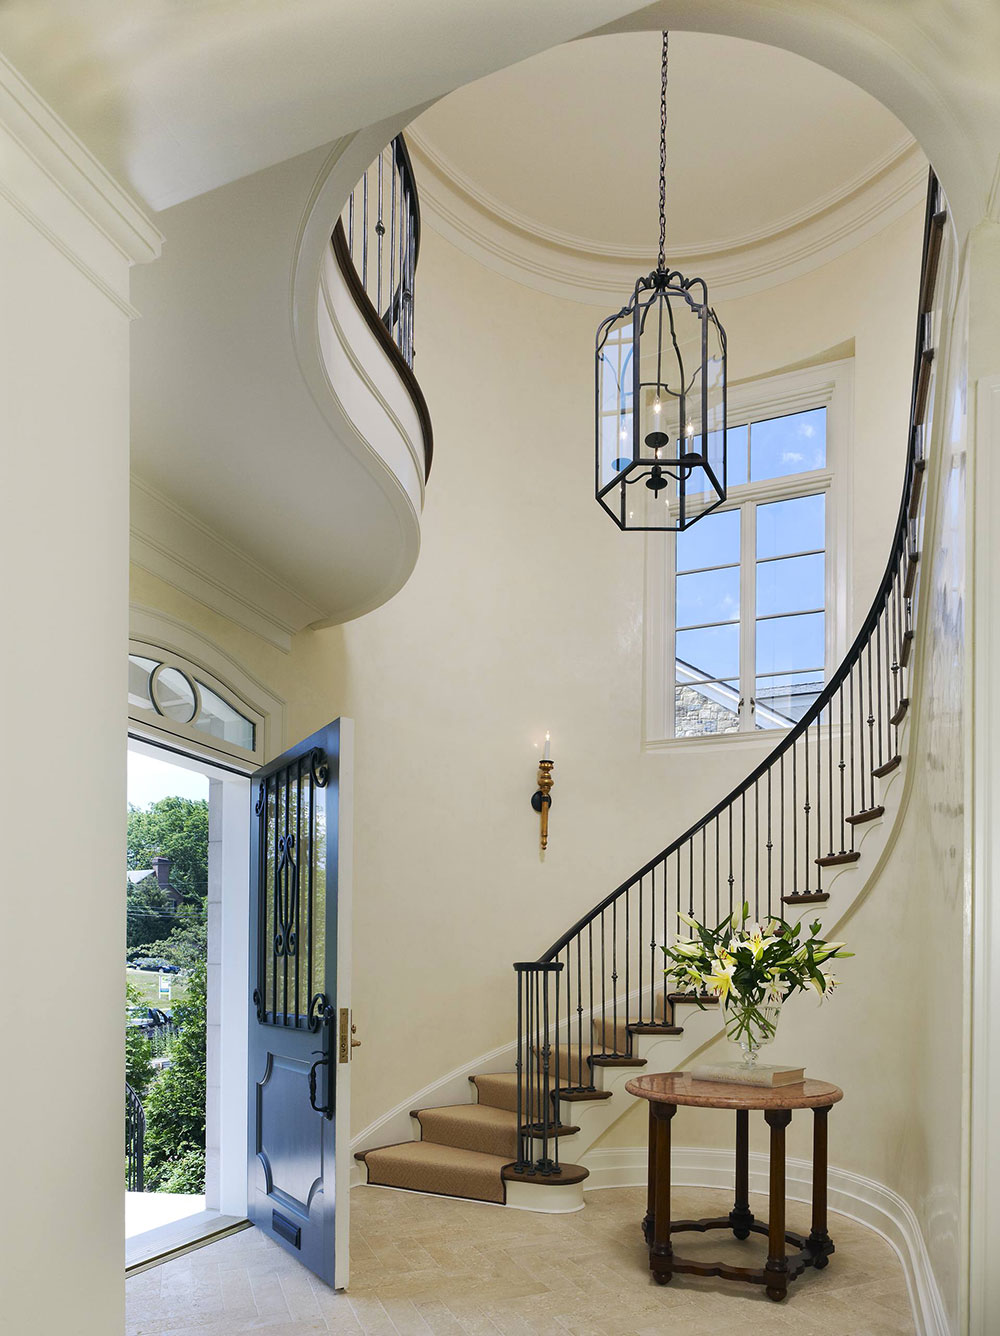 Decorating A Foyer Not Big Deal When You Have These Ideas